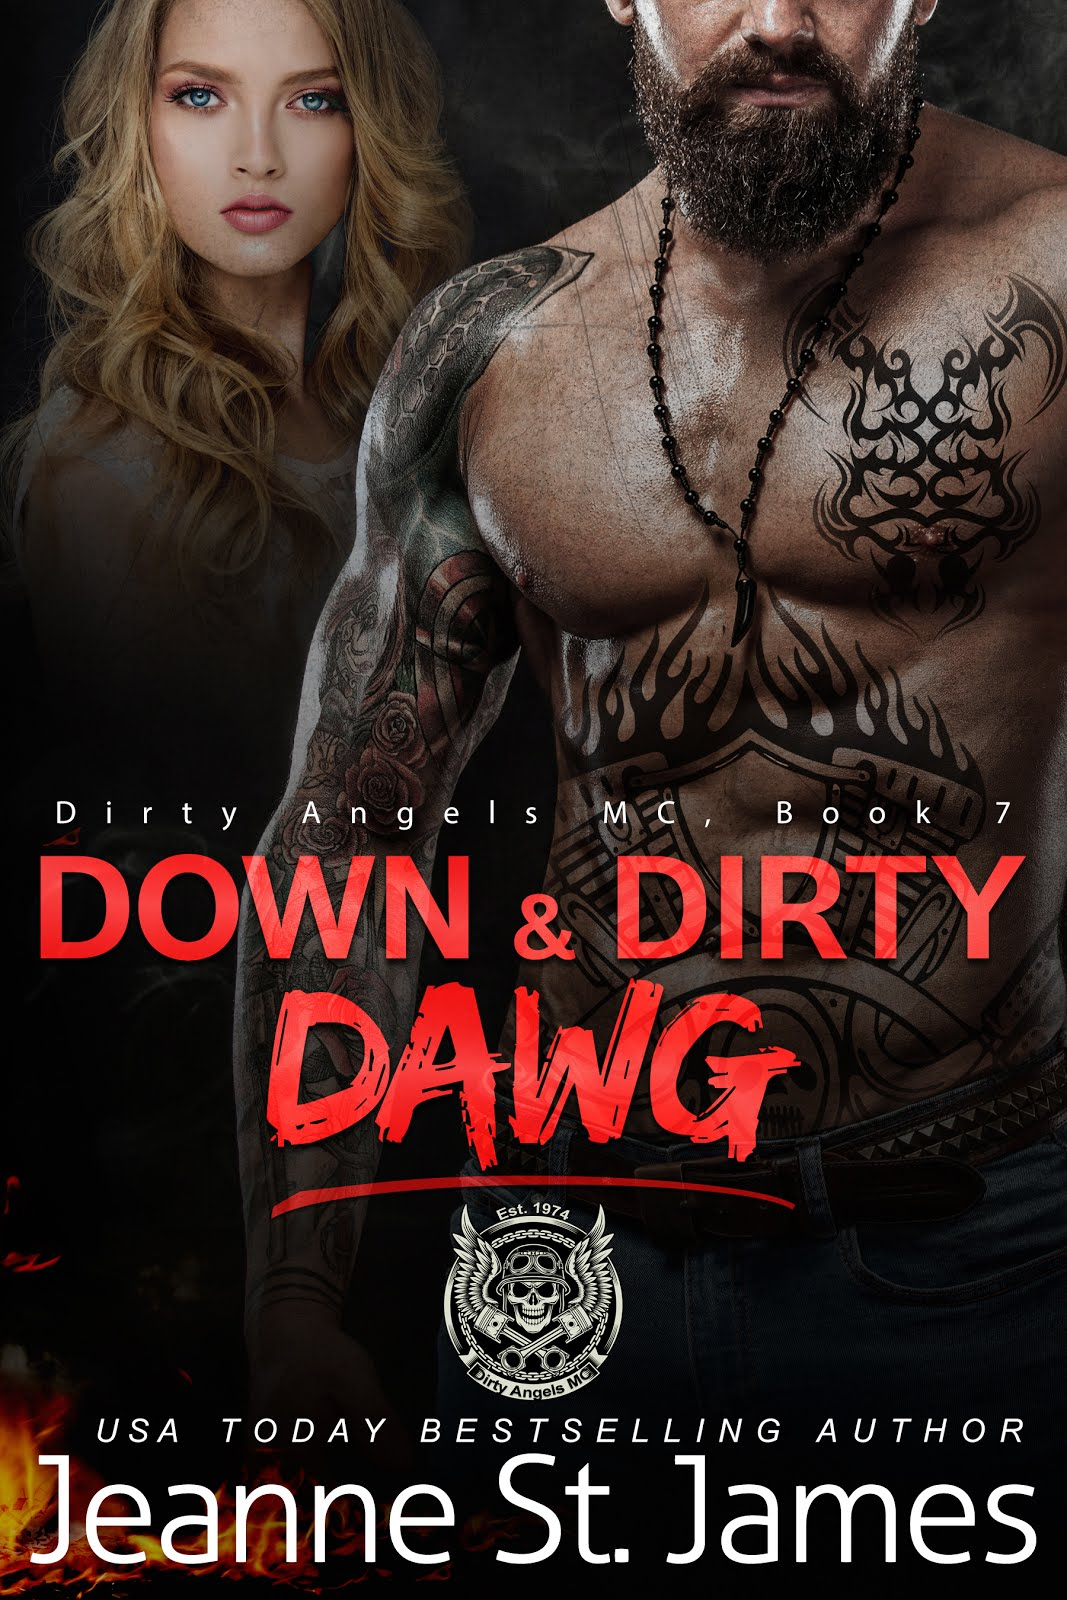 Down & Dirty: Dawg